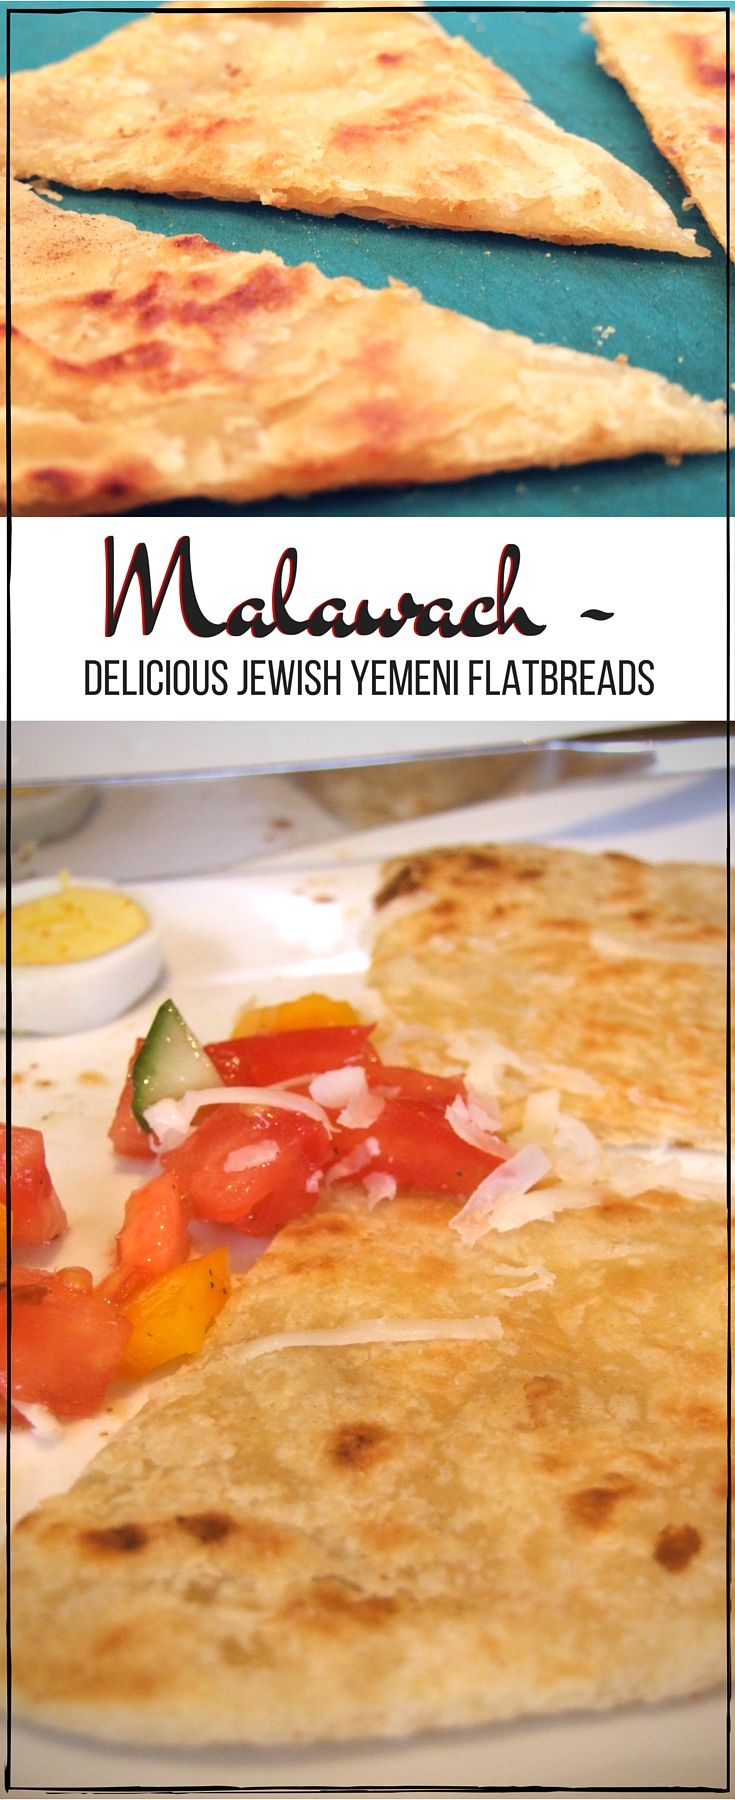 Malawach - delicious Yemenite Jewish fried flatbread - Family-Friends-Food